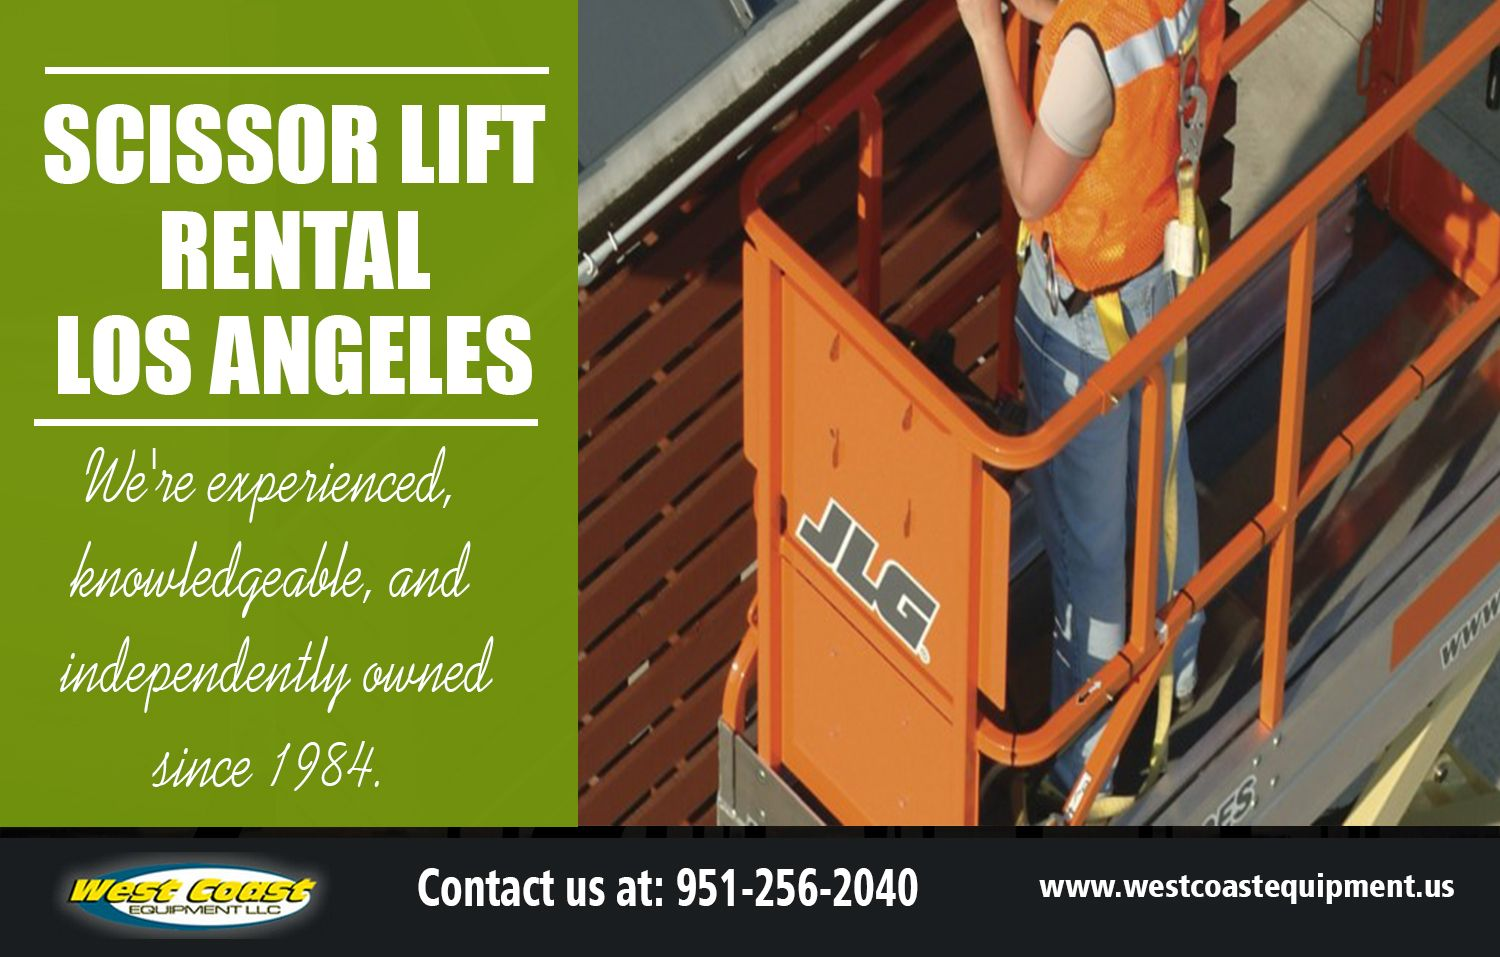 Utilizing A Scissor Lift Rental In Los Angeles Could Delay The